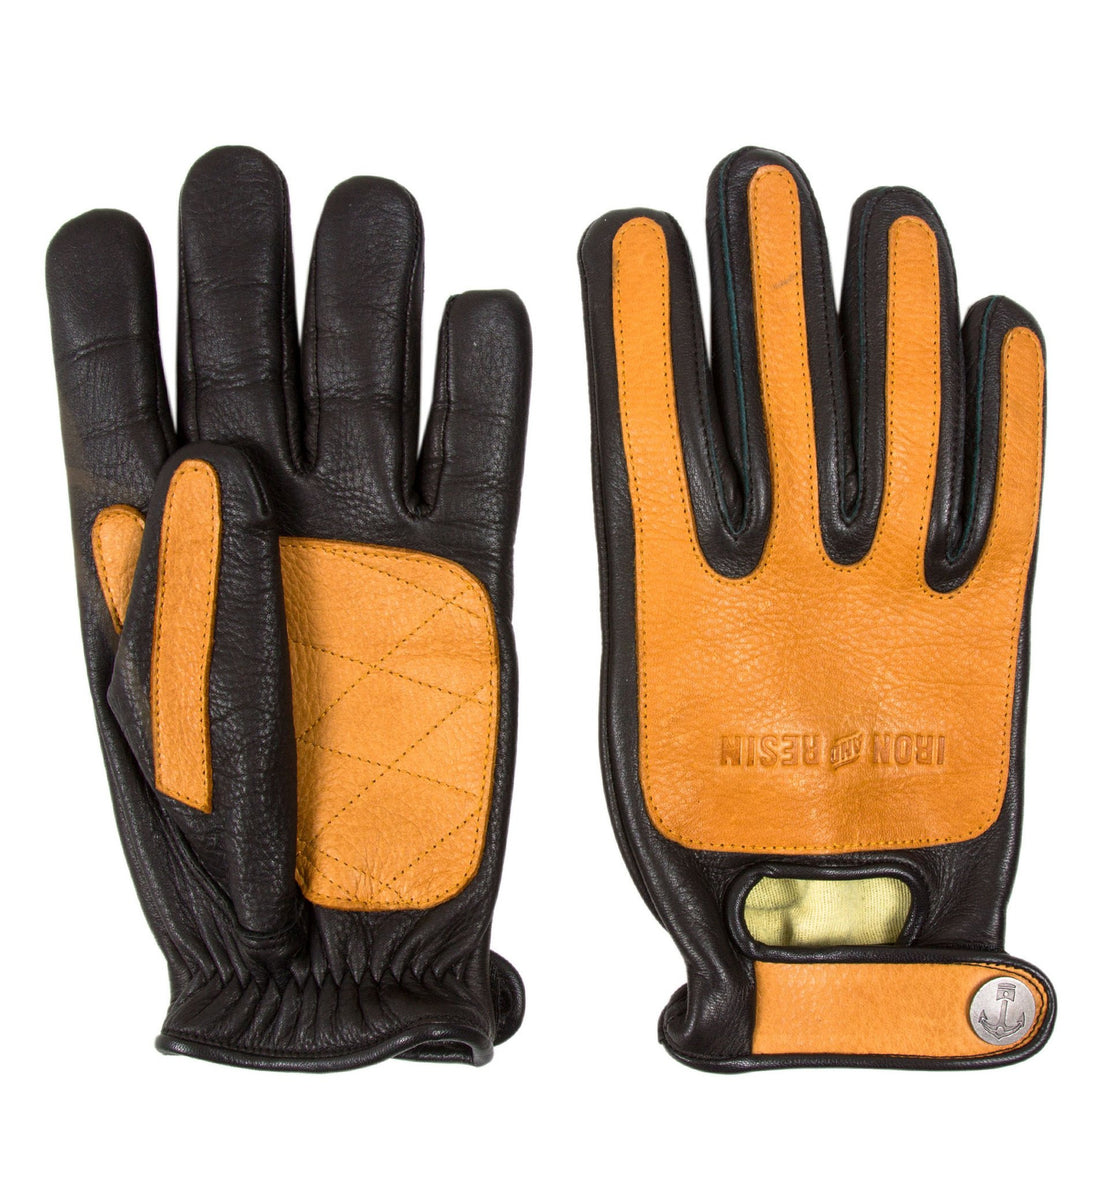 Iron & Resin Kevlar Velocity Gloves - Moto: Gloves - Iron and Resin